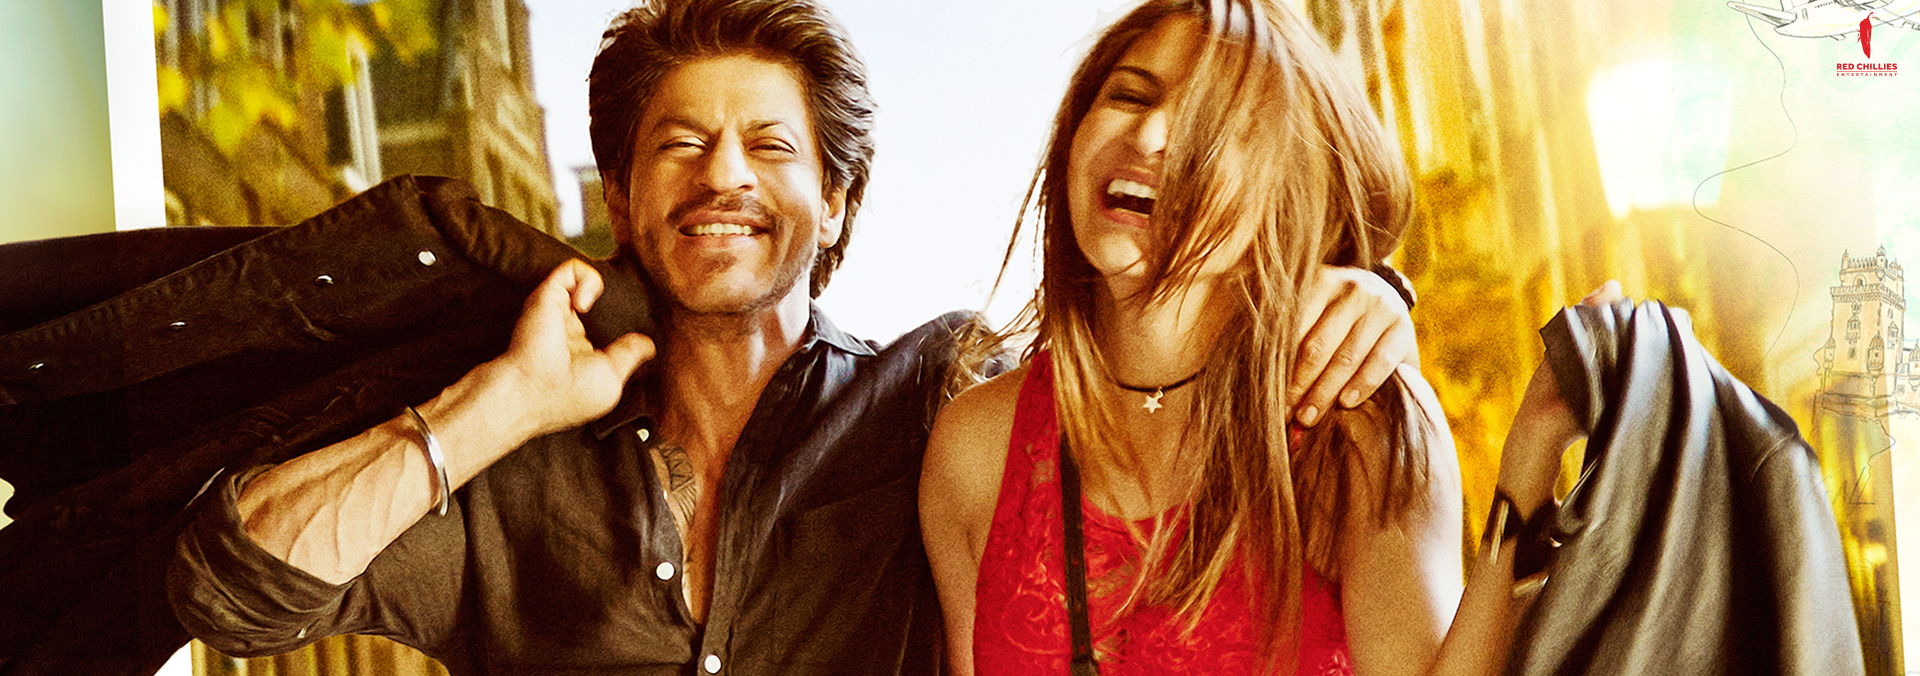 Jab Harry Met Sejal-3